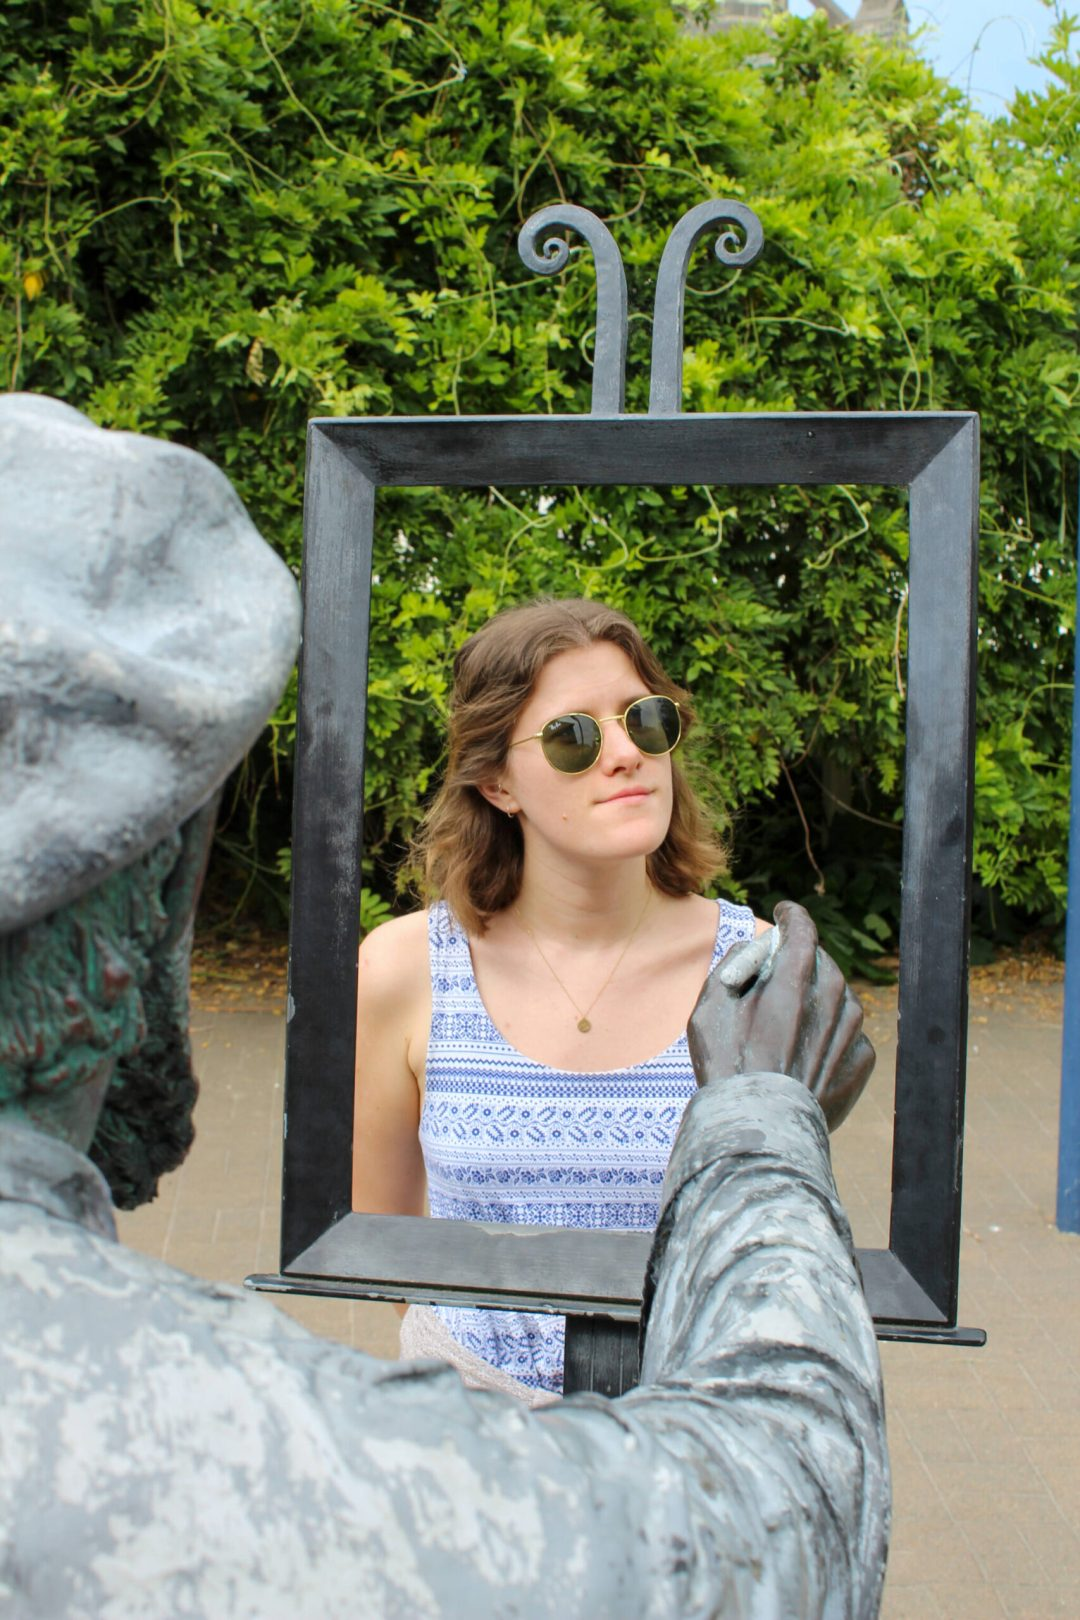 Woman stands in the frame of a sculpture that depicts an artist painting a picture